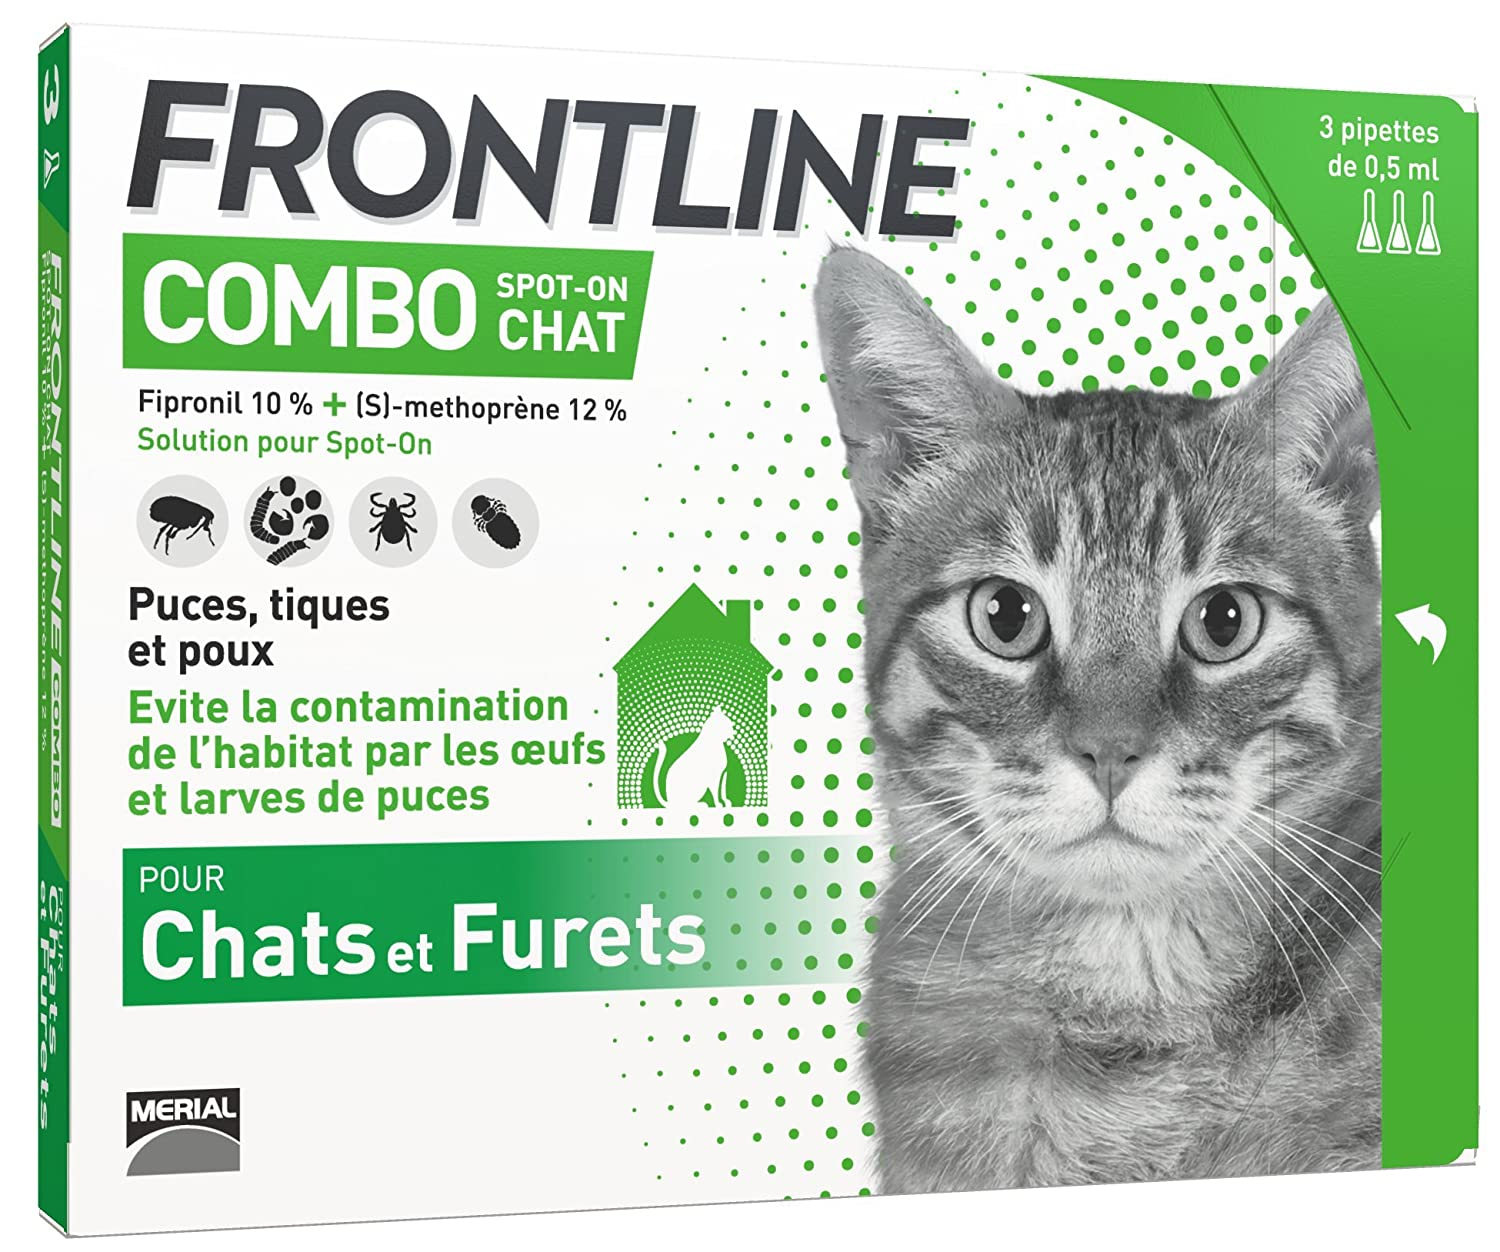 FRONTLINE Combo Chat - Anti-puces anti-tiques chat - 3 pipettes 3661103005957